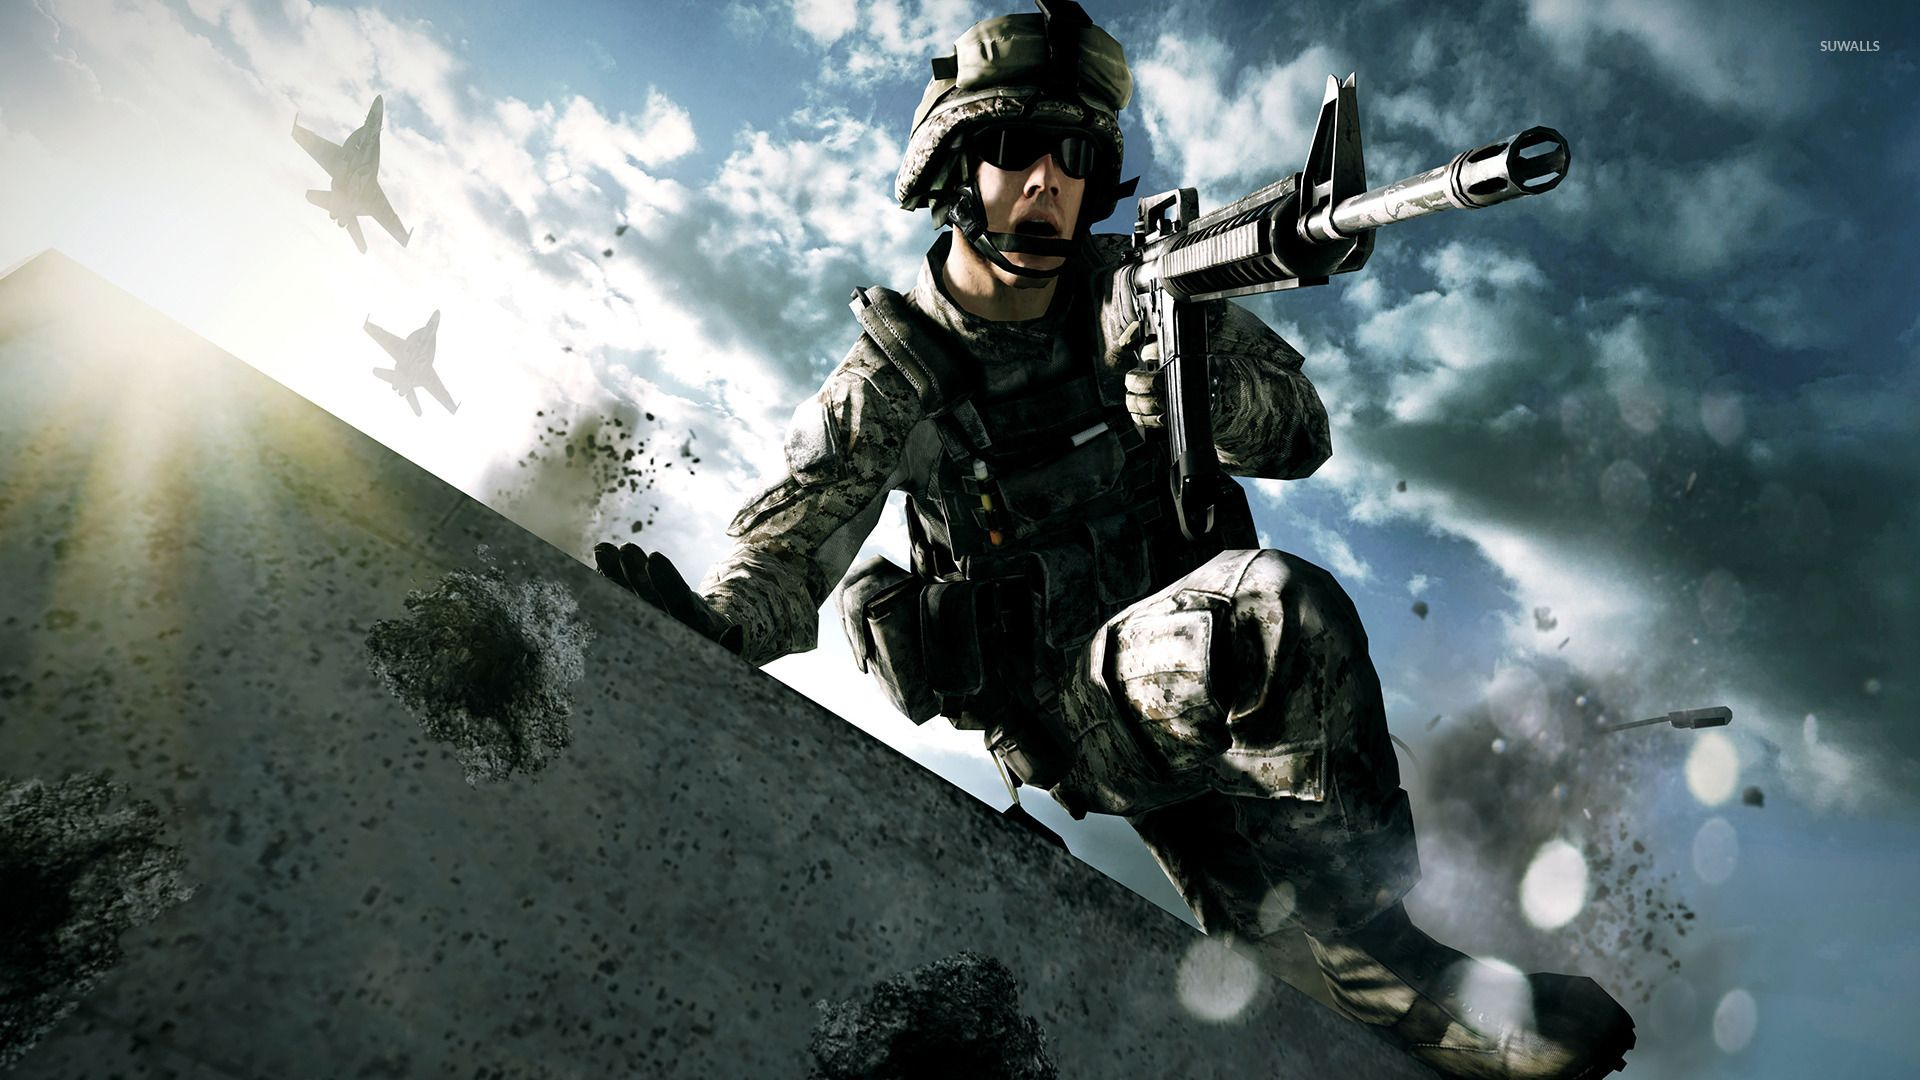 brothers in arms: furious 4 [2] wallpaper - game wallpapers - #18513